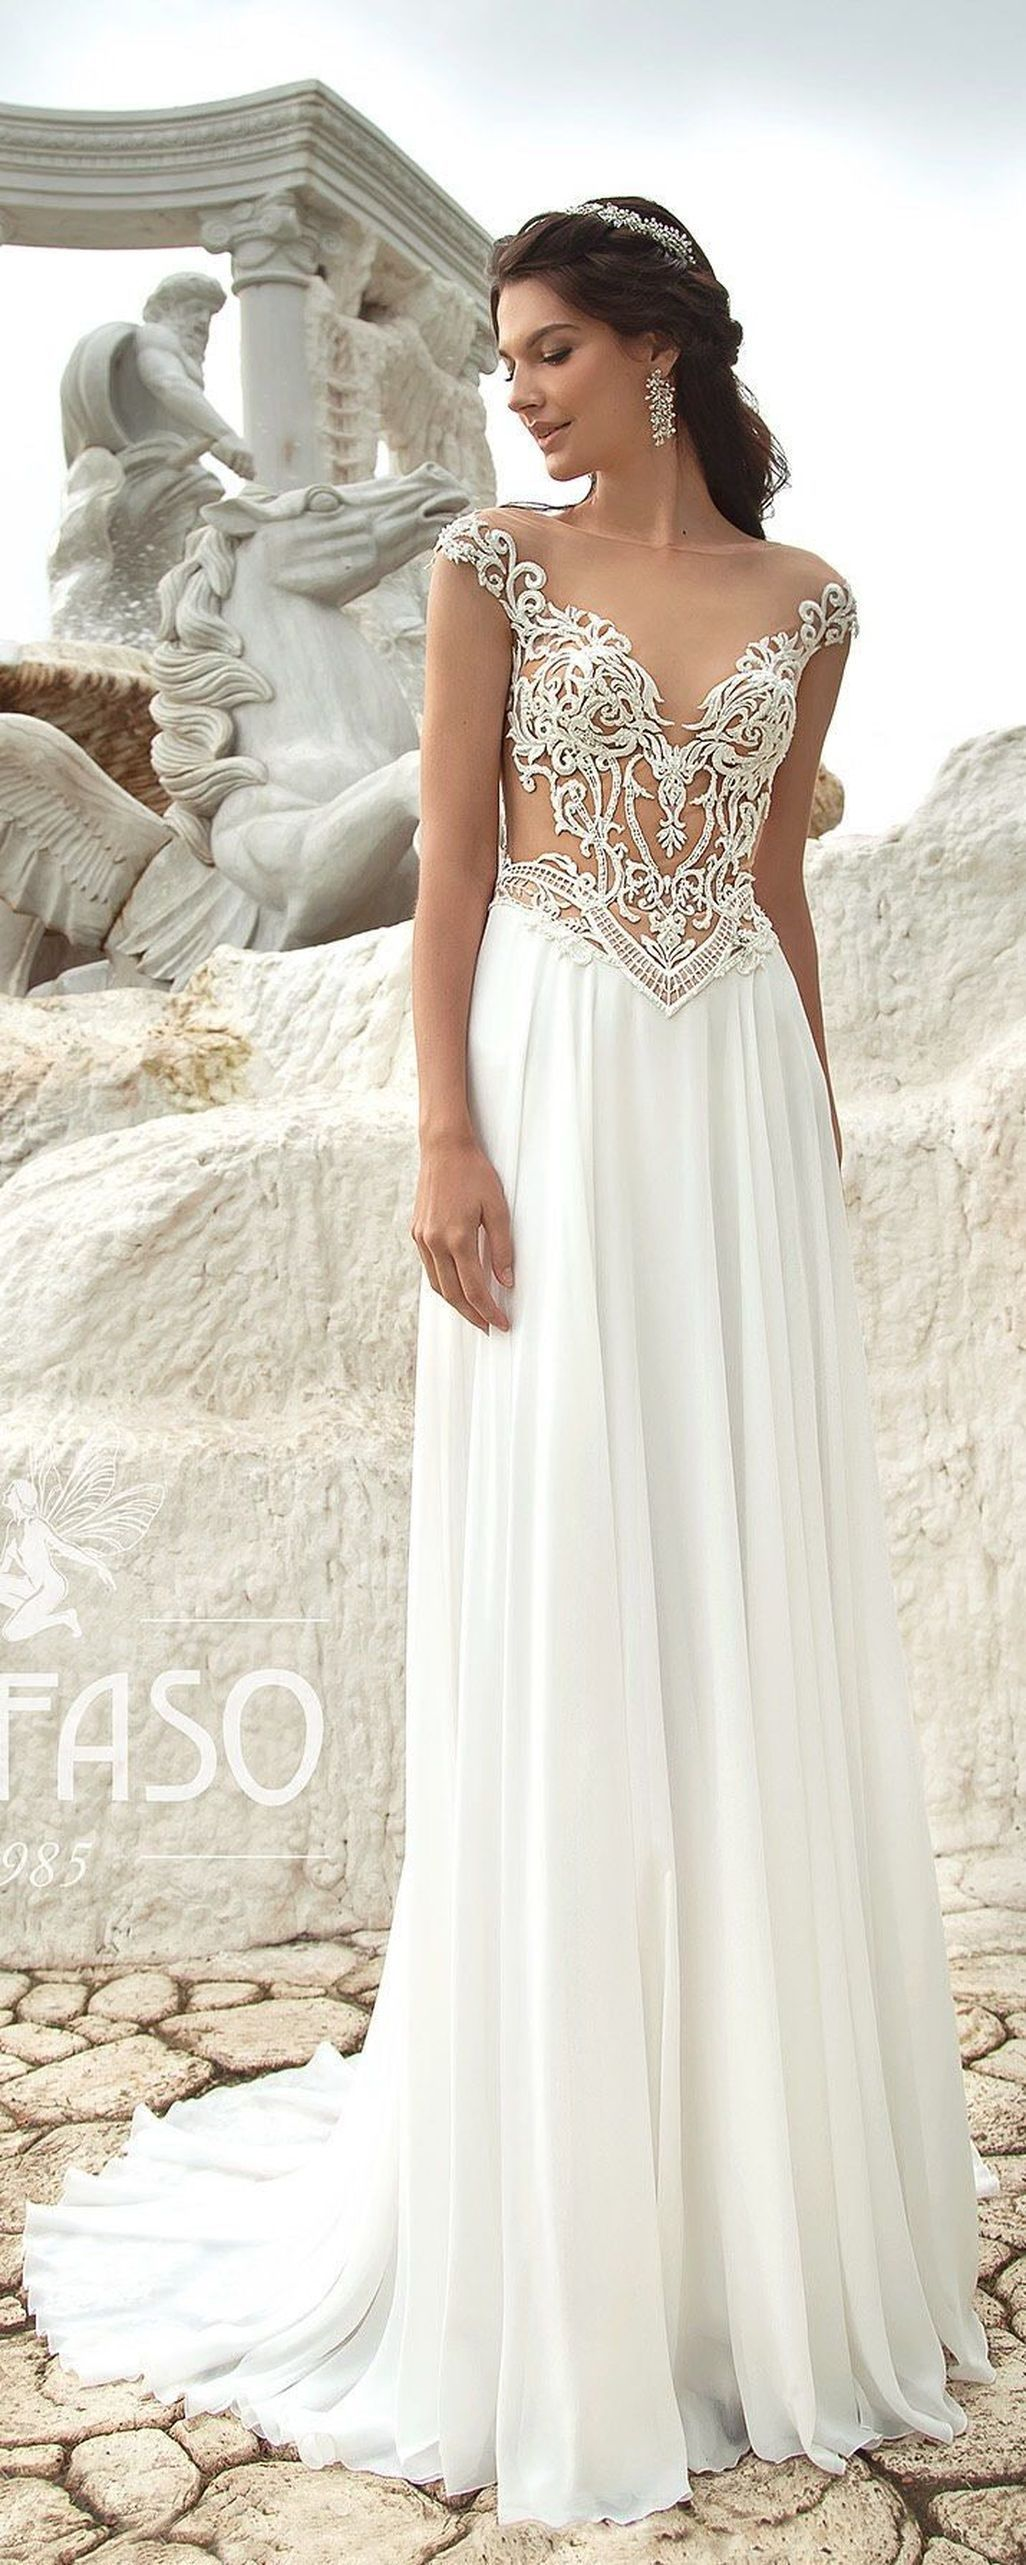 Nice stunning beach wedding dress ideas to makes you